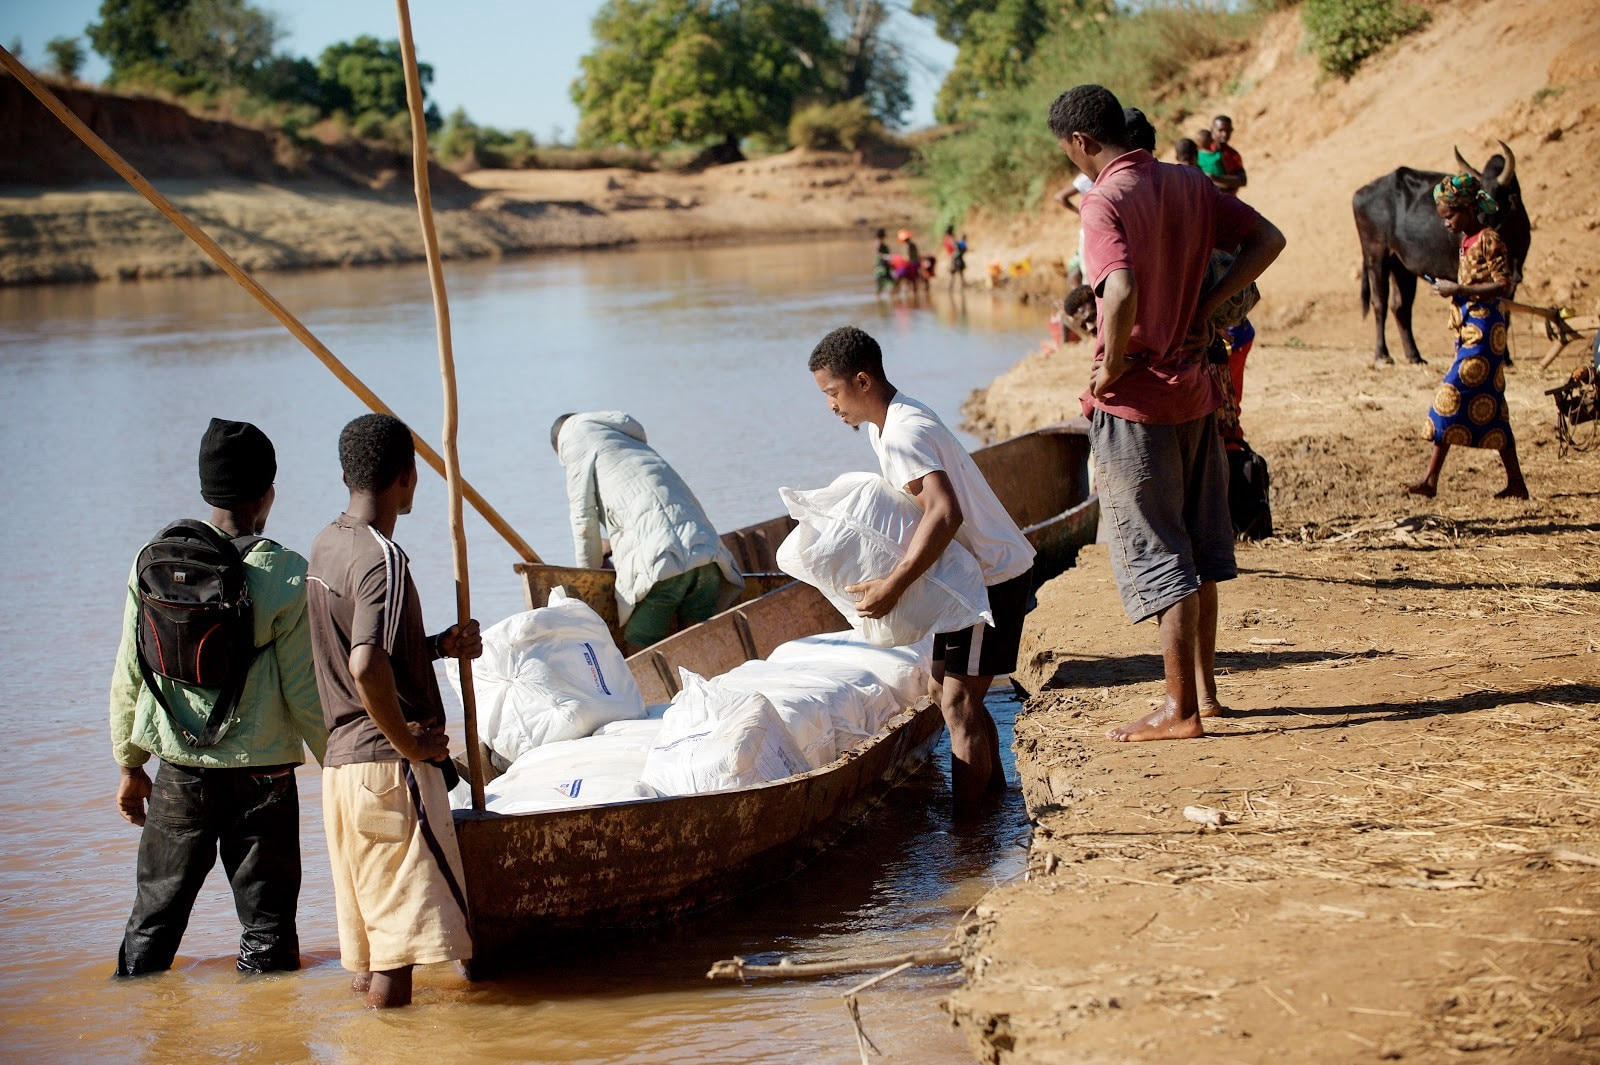 Malaria nets are placed onto pirogues to be transported across a river. (Lan Andrian, USAID Global Health Supply Chain Program—Procurement and Supply Management)